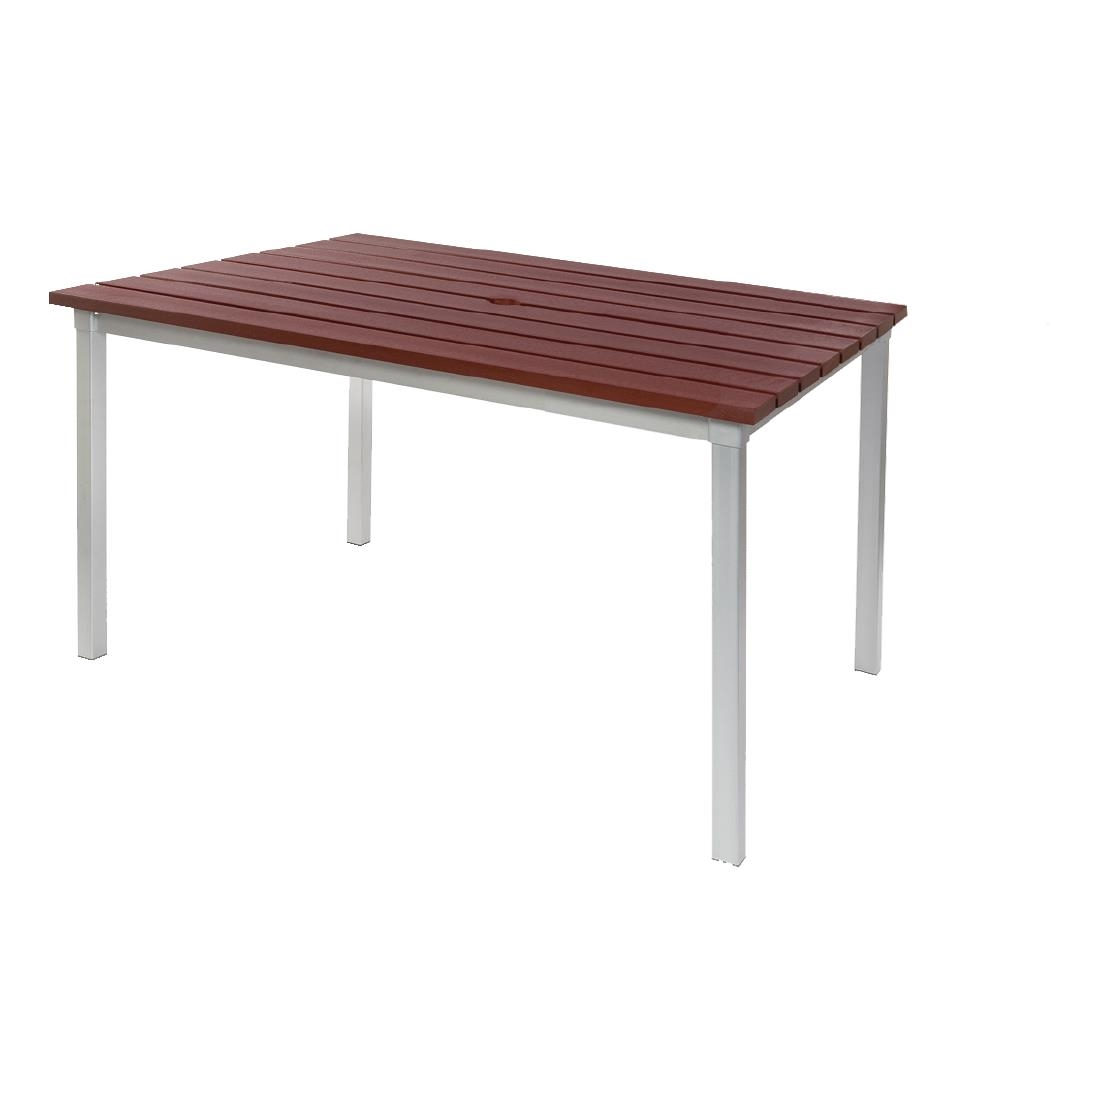 Image of Enviro Outdoor Walnut Effect Faux Wood Table 1250mm